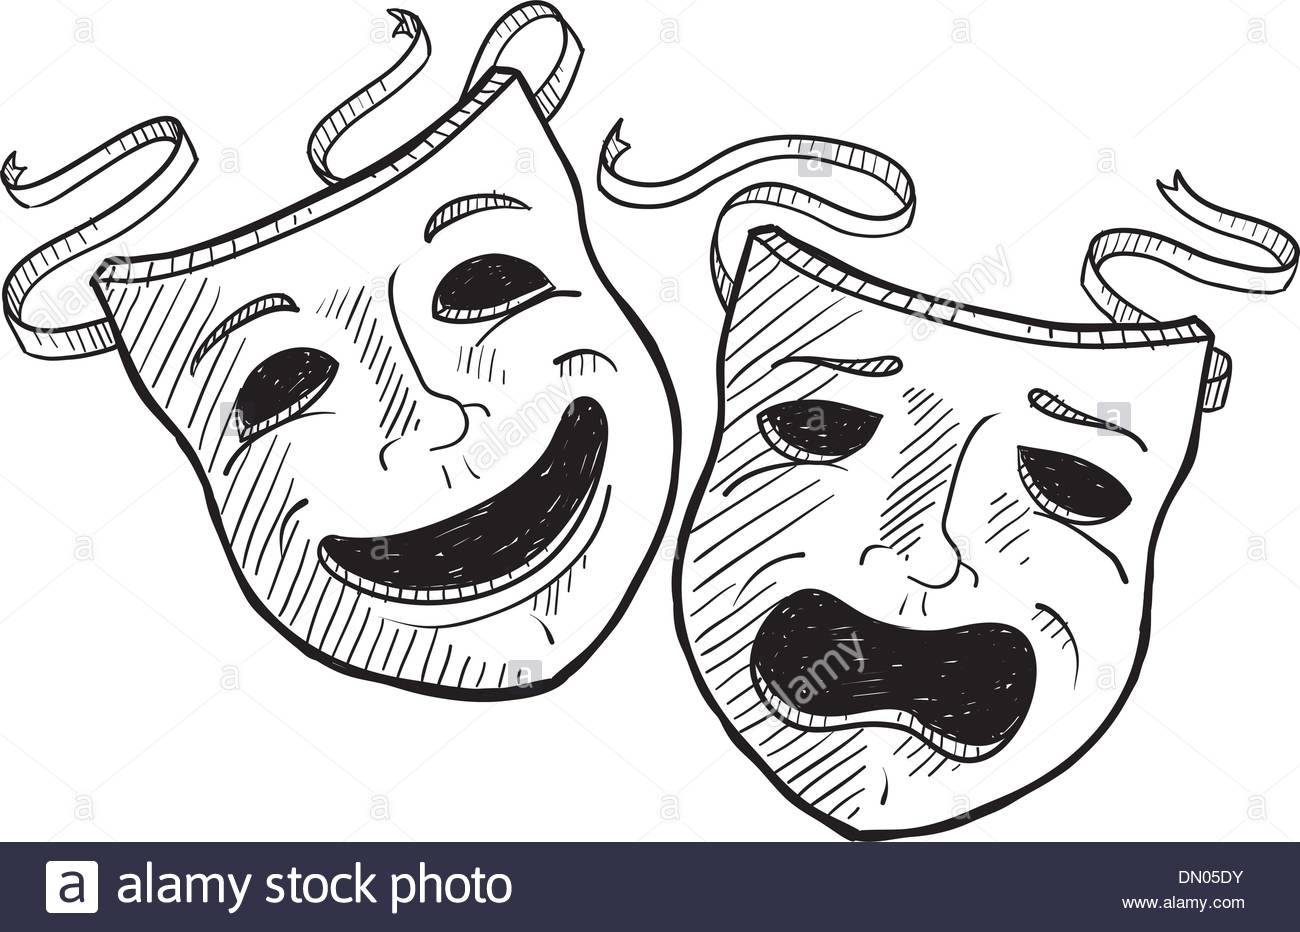 Acting Rehearsal Stock Vector Images - Alamy concernant Dessin Theatre